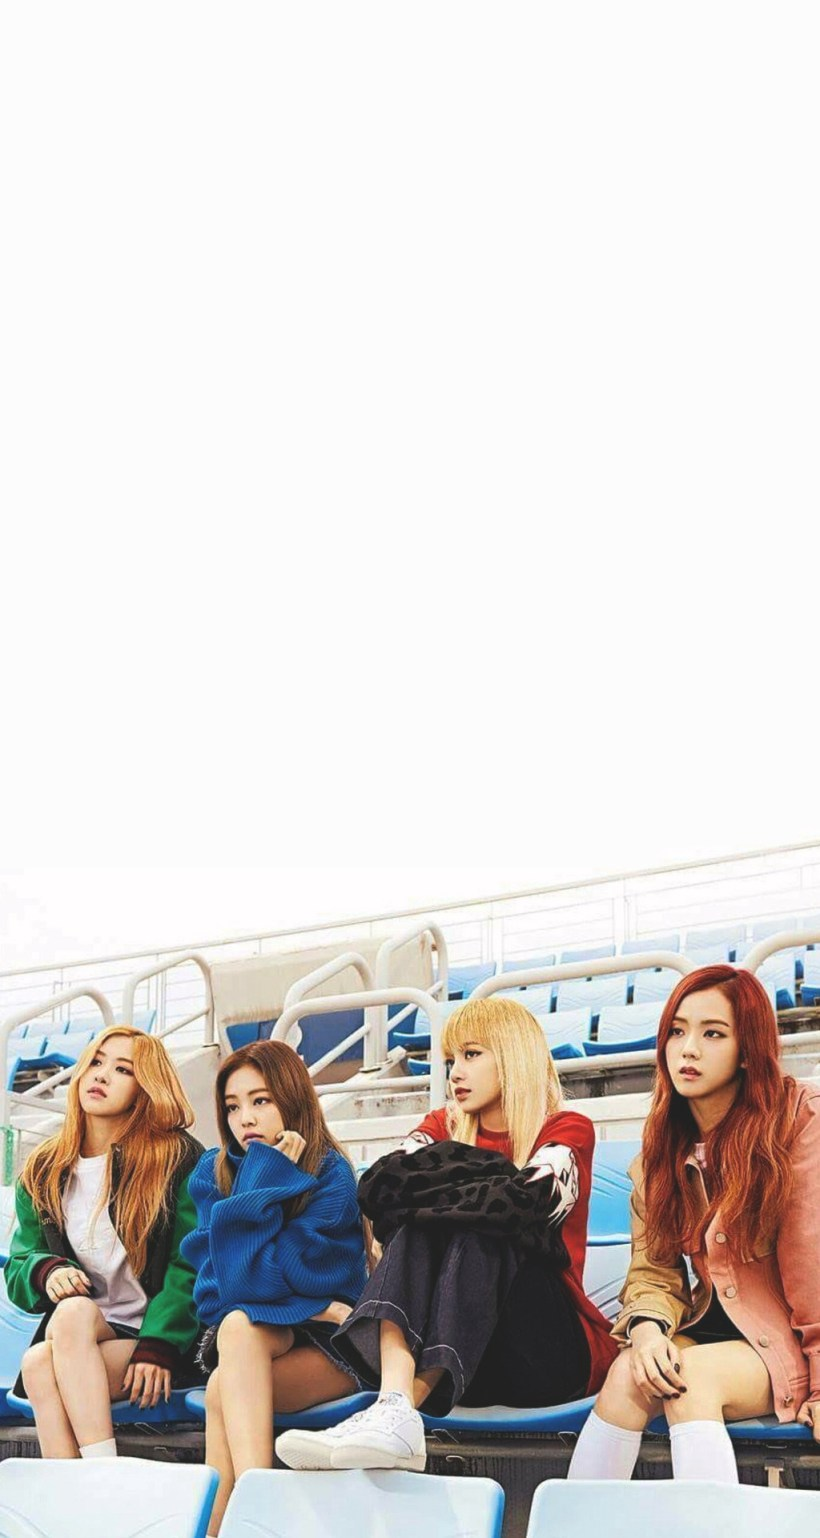 Blackpink Wallpaper Hd Phone 2018